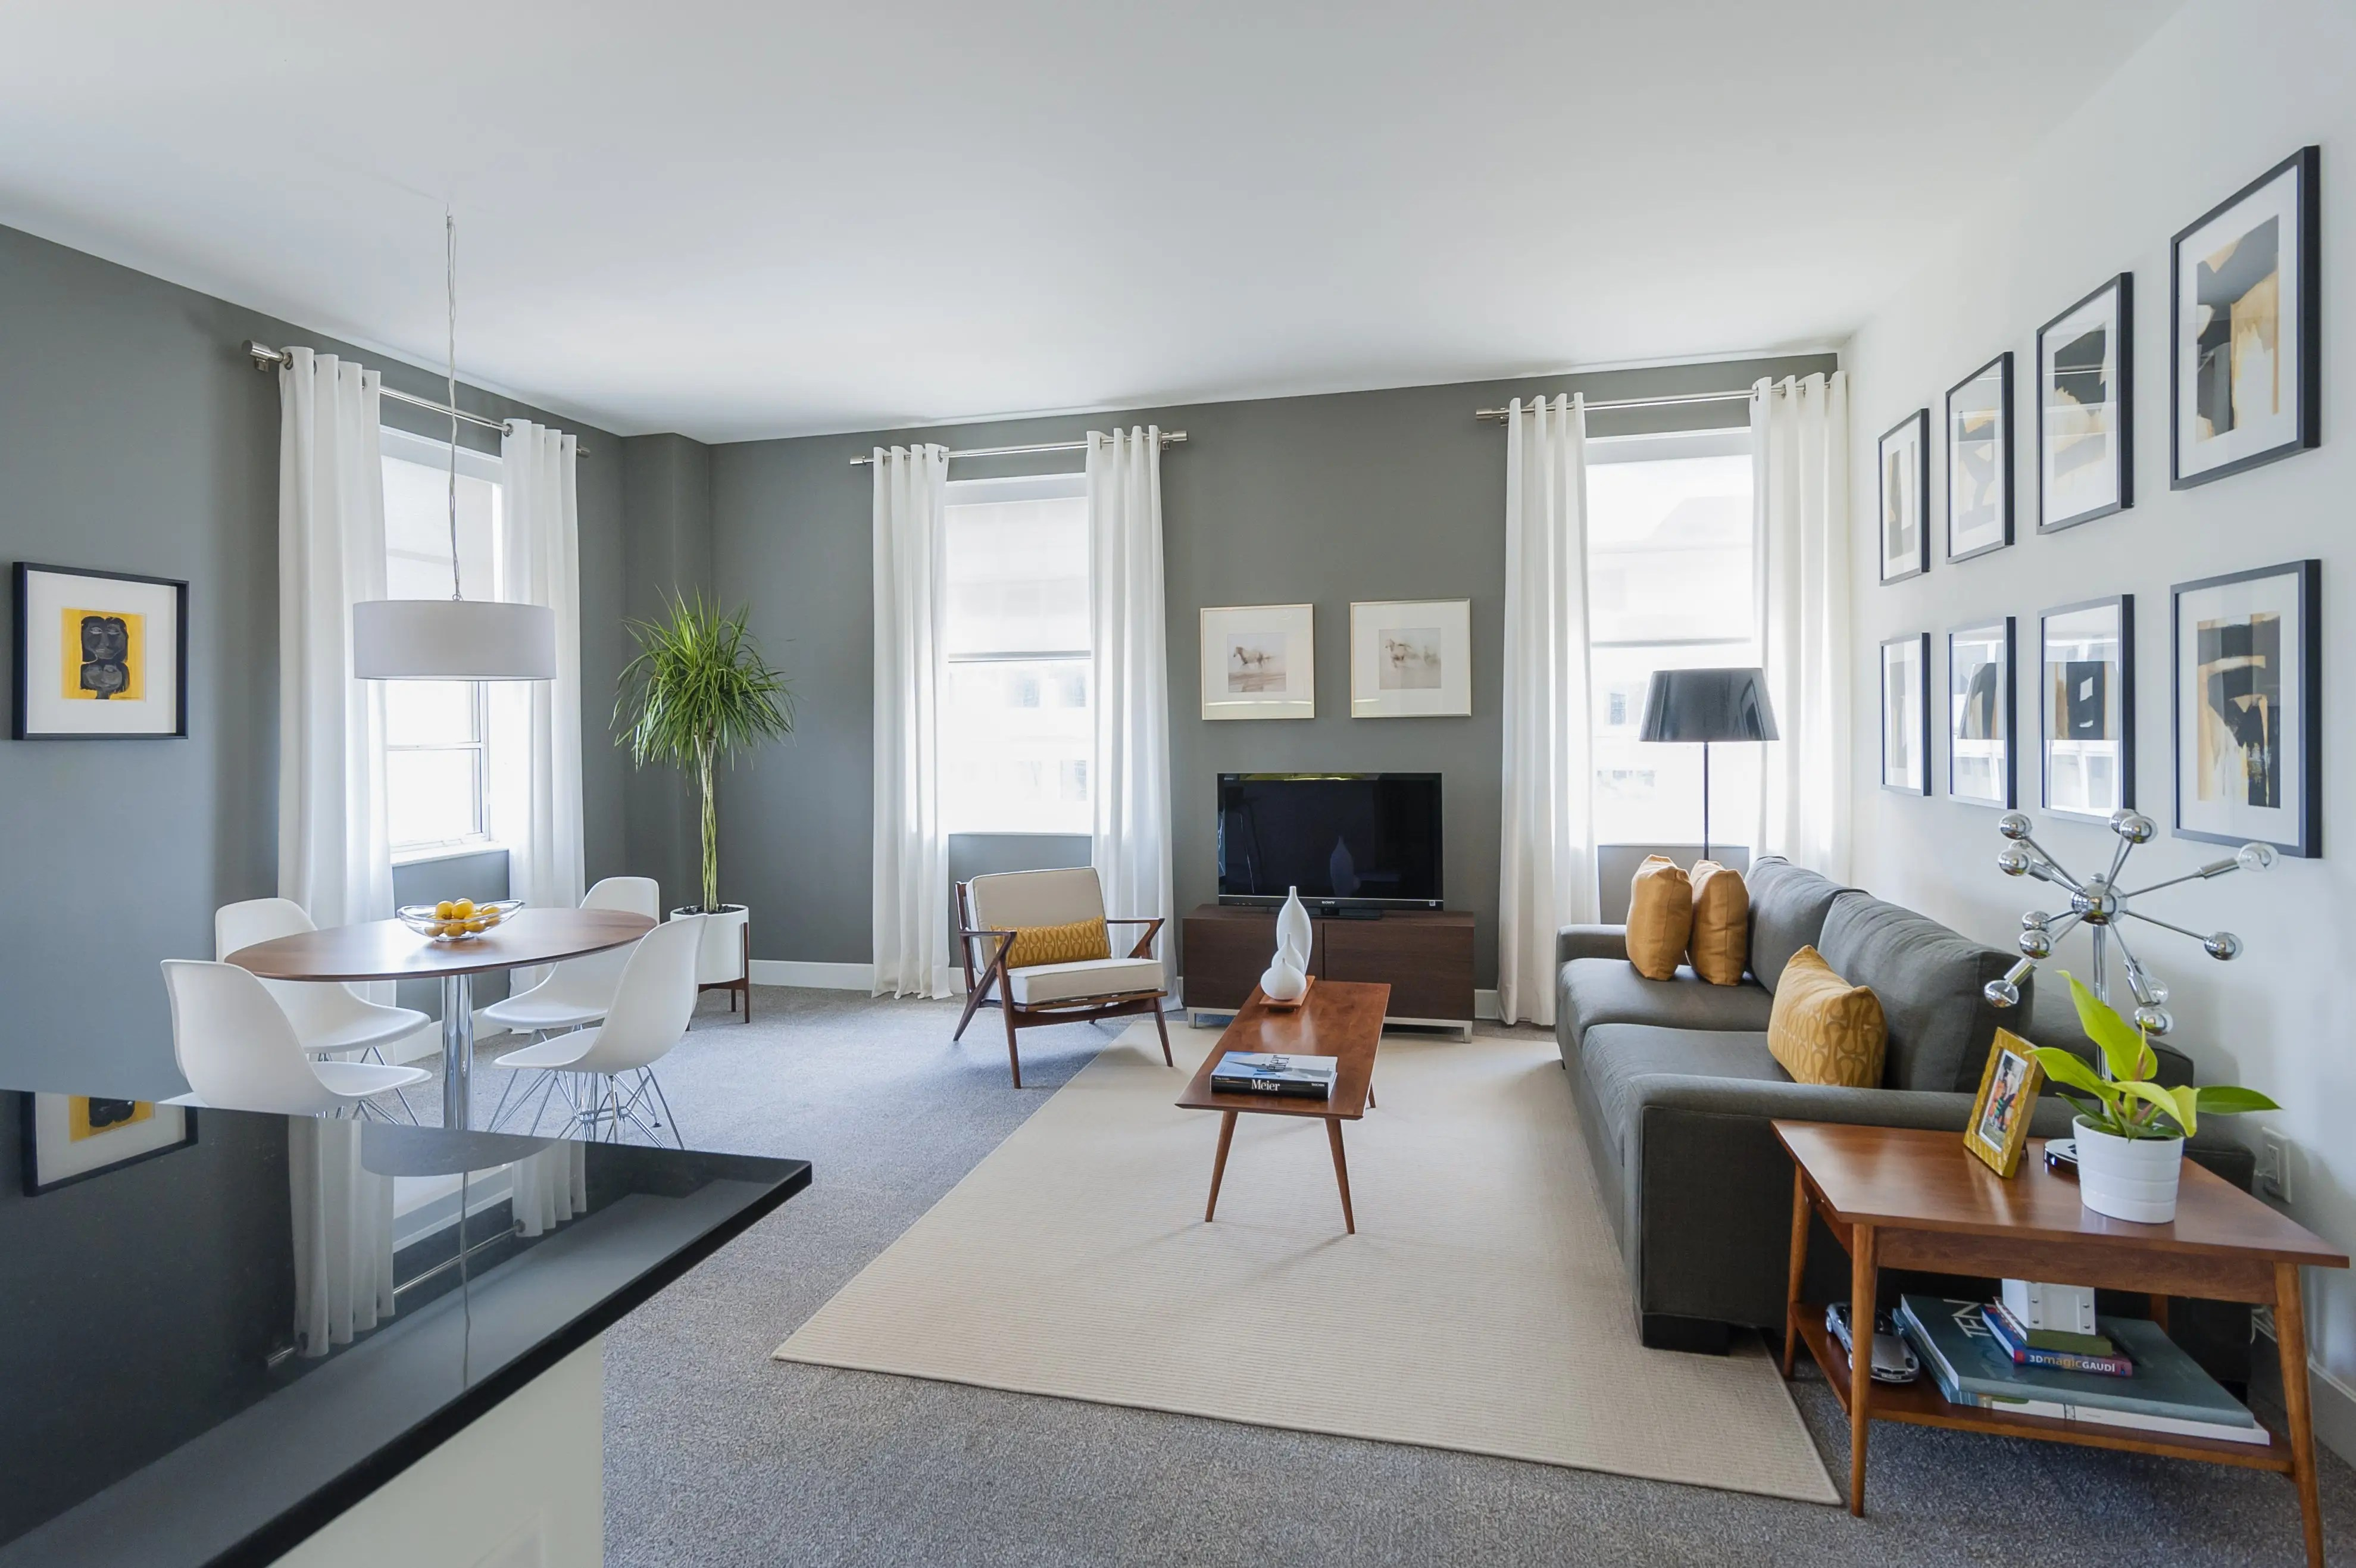 Inspirational Apartment Rapy Homes That Are Less Than Square Meters Business Insider How Big Is 400 Square Feet Studio How Big Is 400 Square Feet Room curbed How Big Is 400 Square Feet